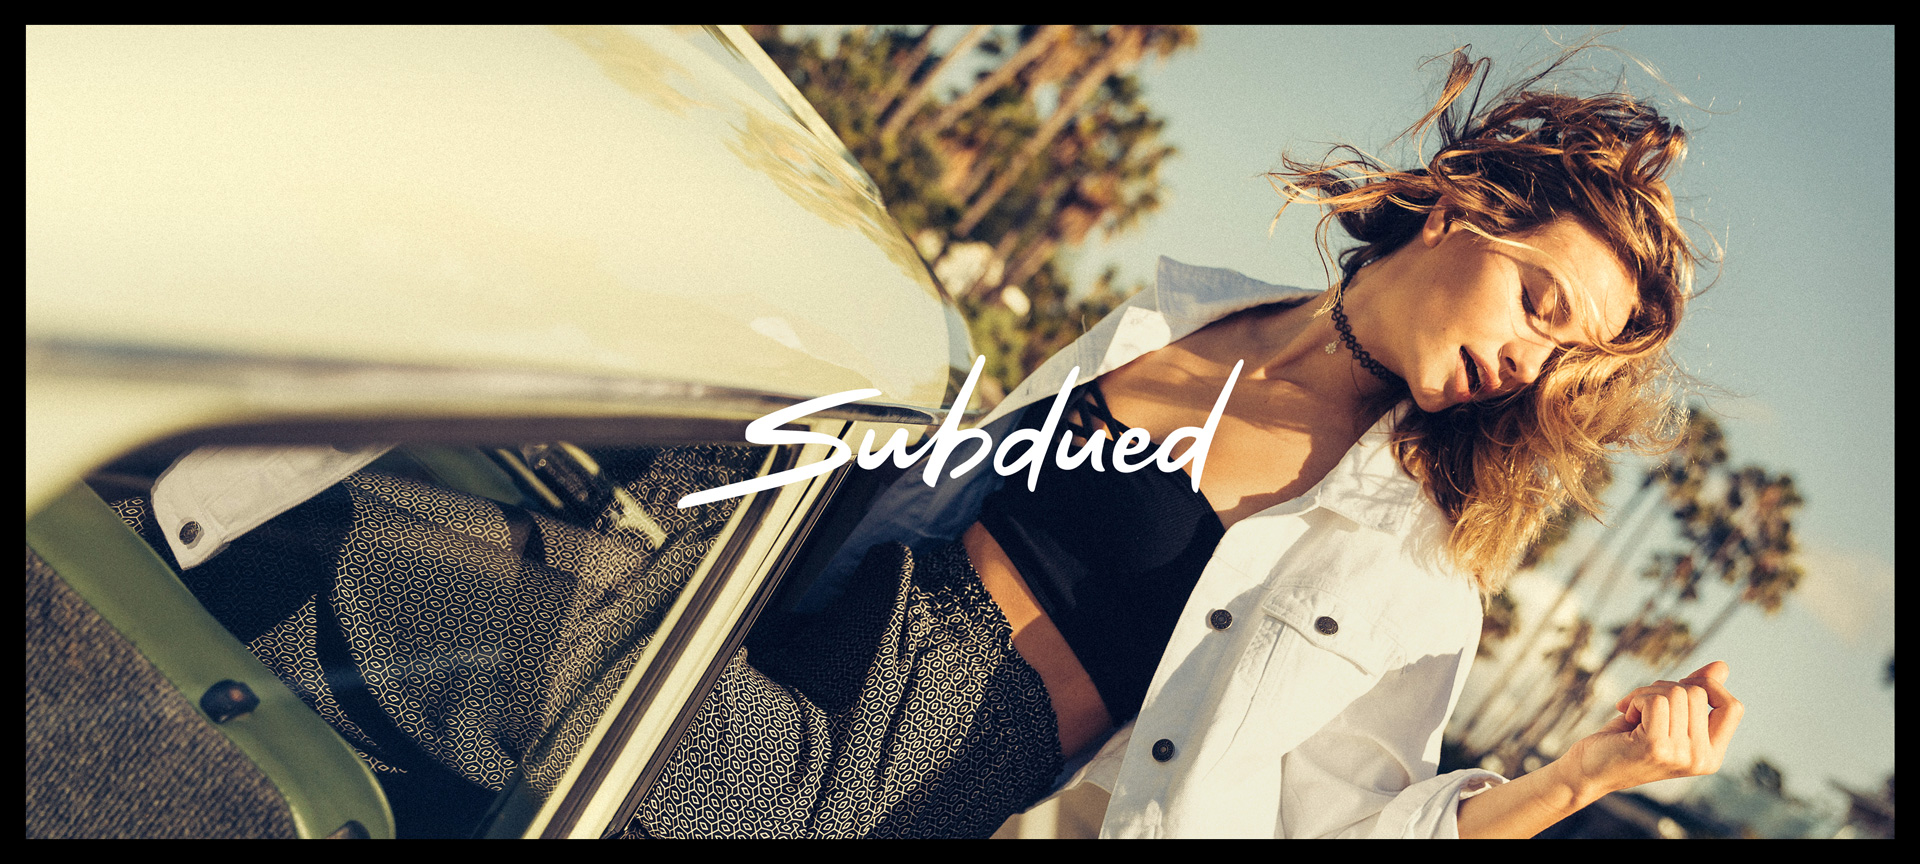 Subdued_01